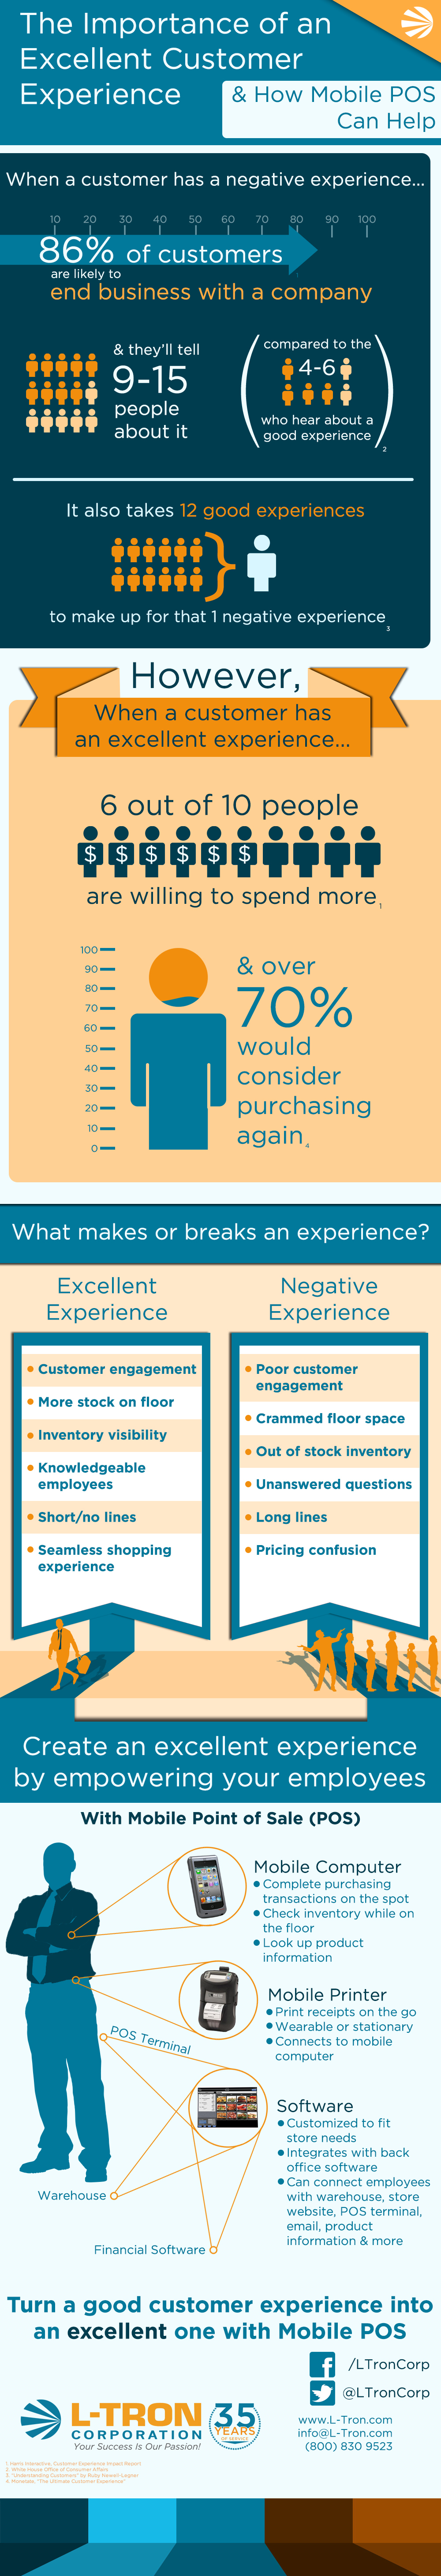 Infographic on Enhancing the Customer Experience with Mobile POS